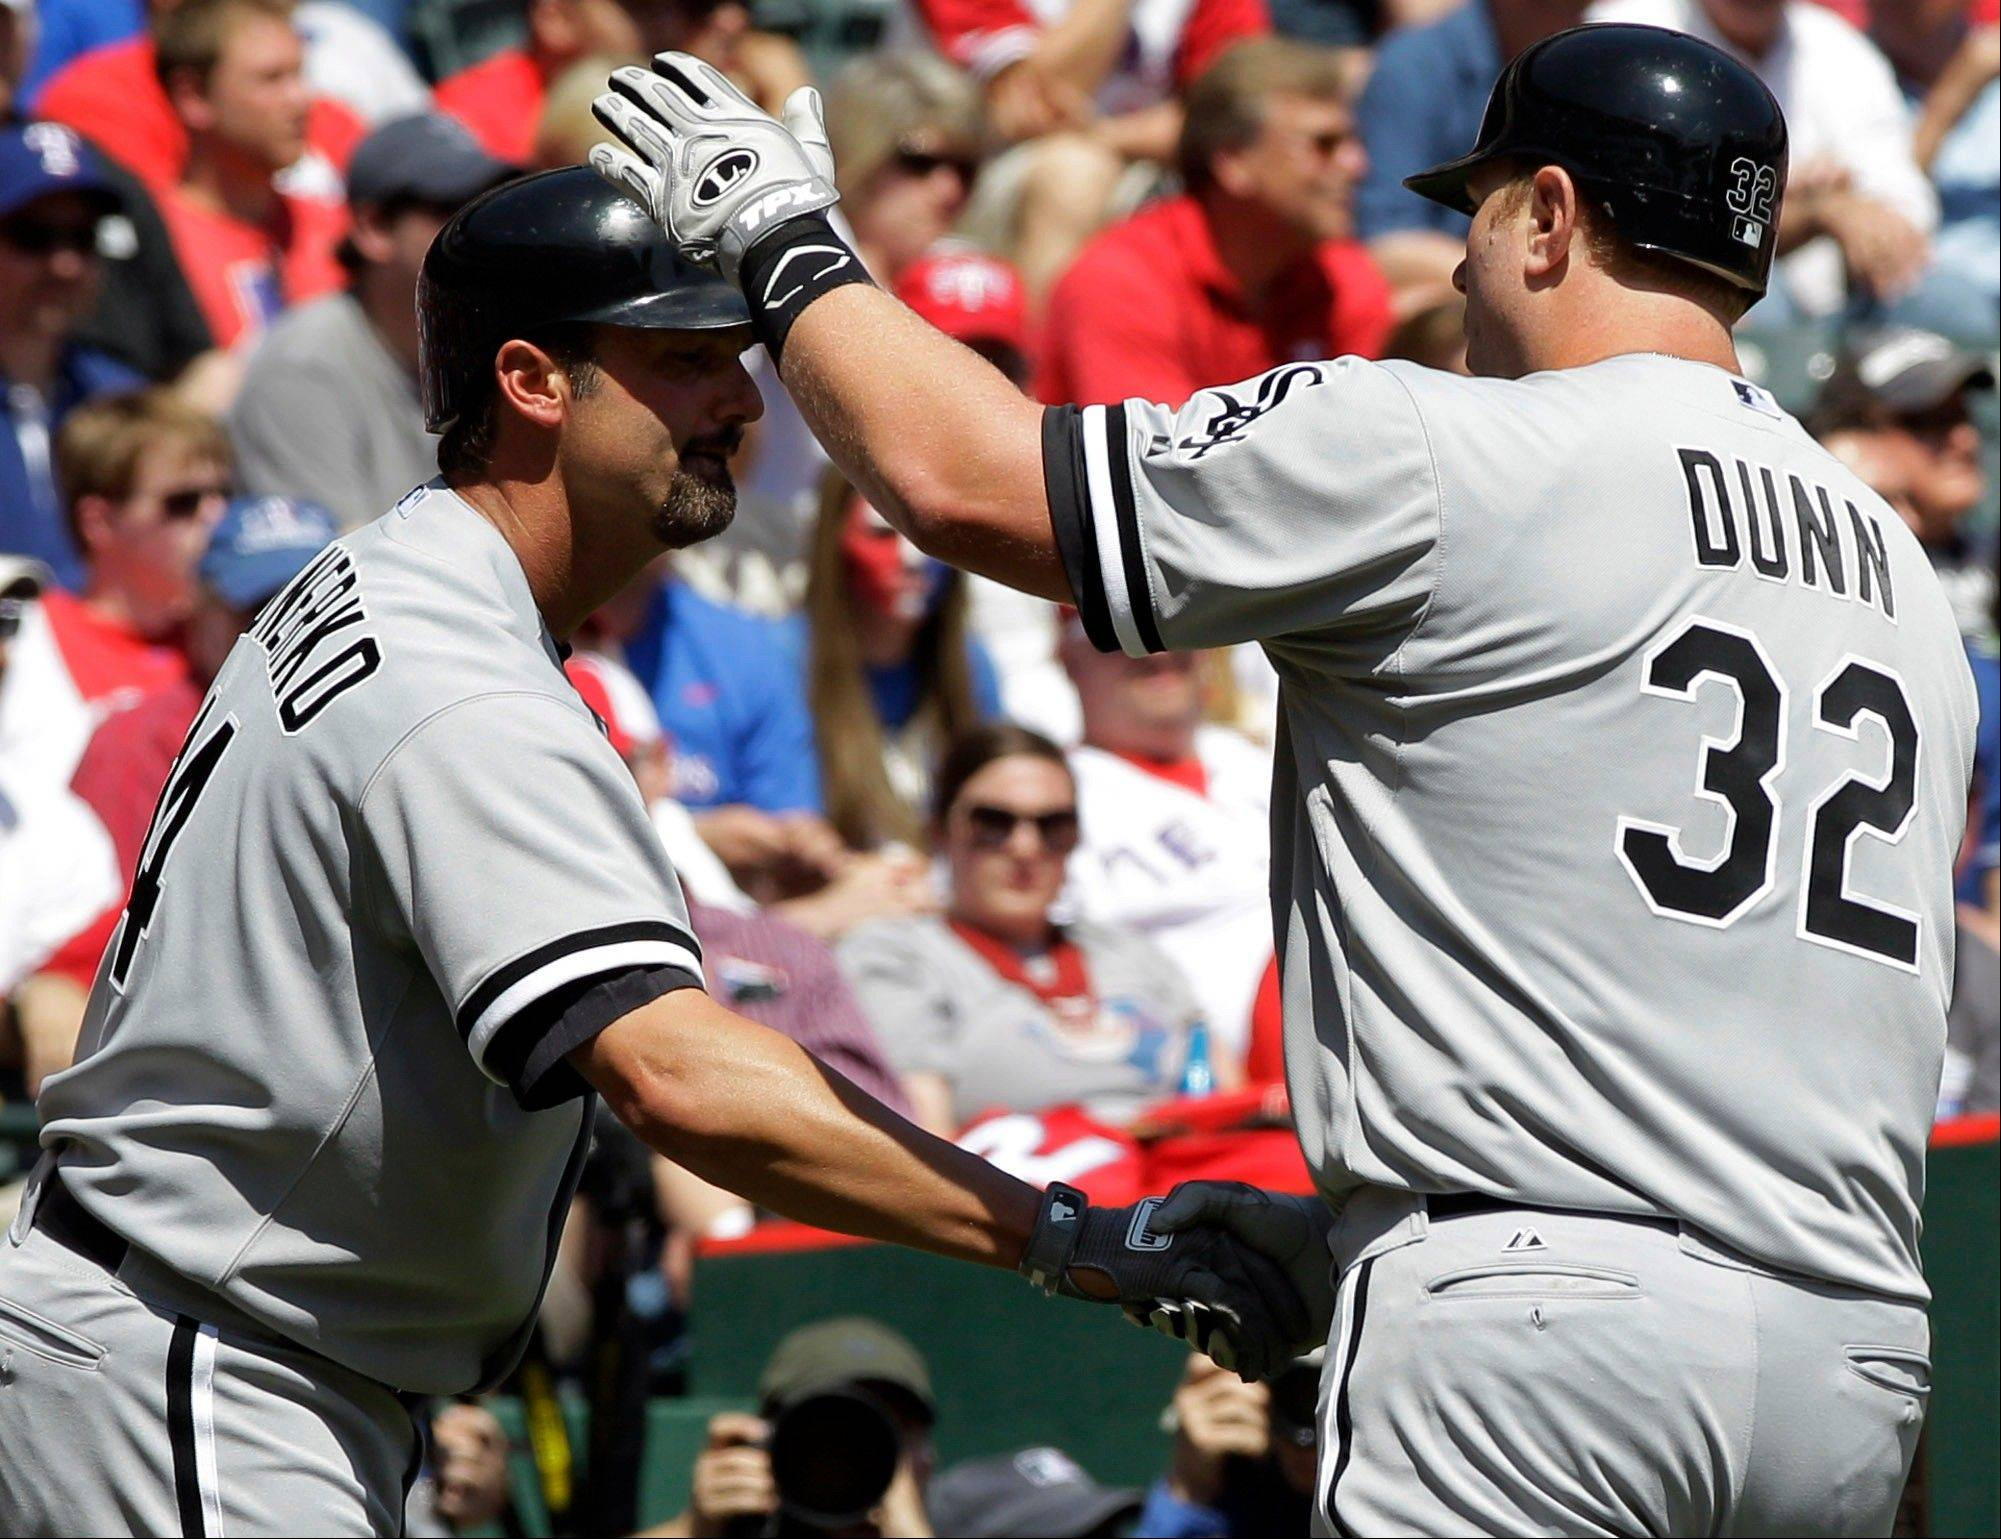 Chicago White Sox's Paul Konerko, left, congratulates Adam Dunn (32) after Dunn hit a solo home run against the Texas Rangers during the sixth inning of a baseball game, Friday, April 6, 2012, in Arlington, Texas.